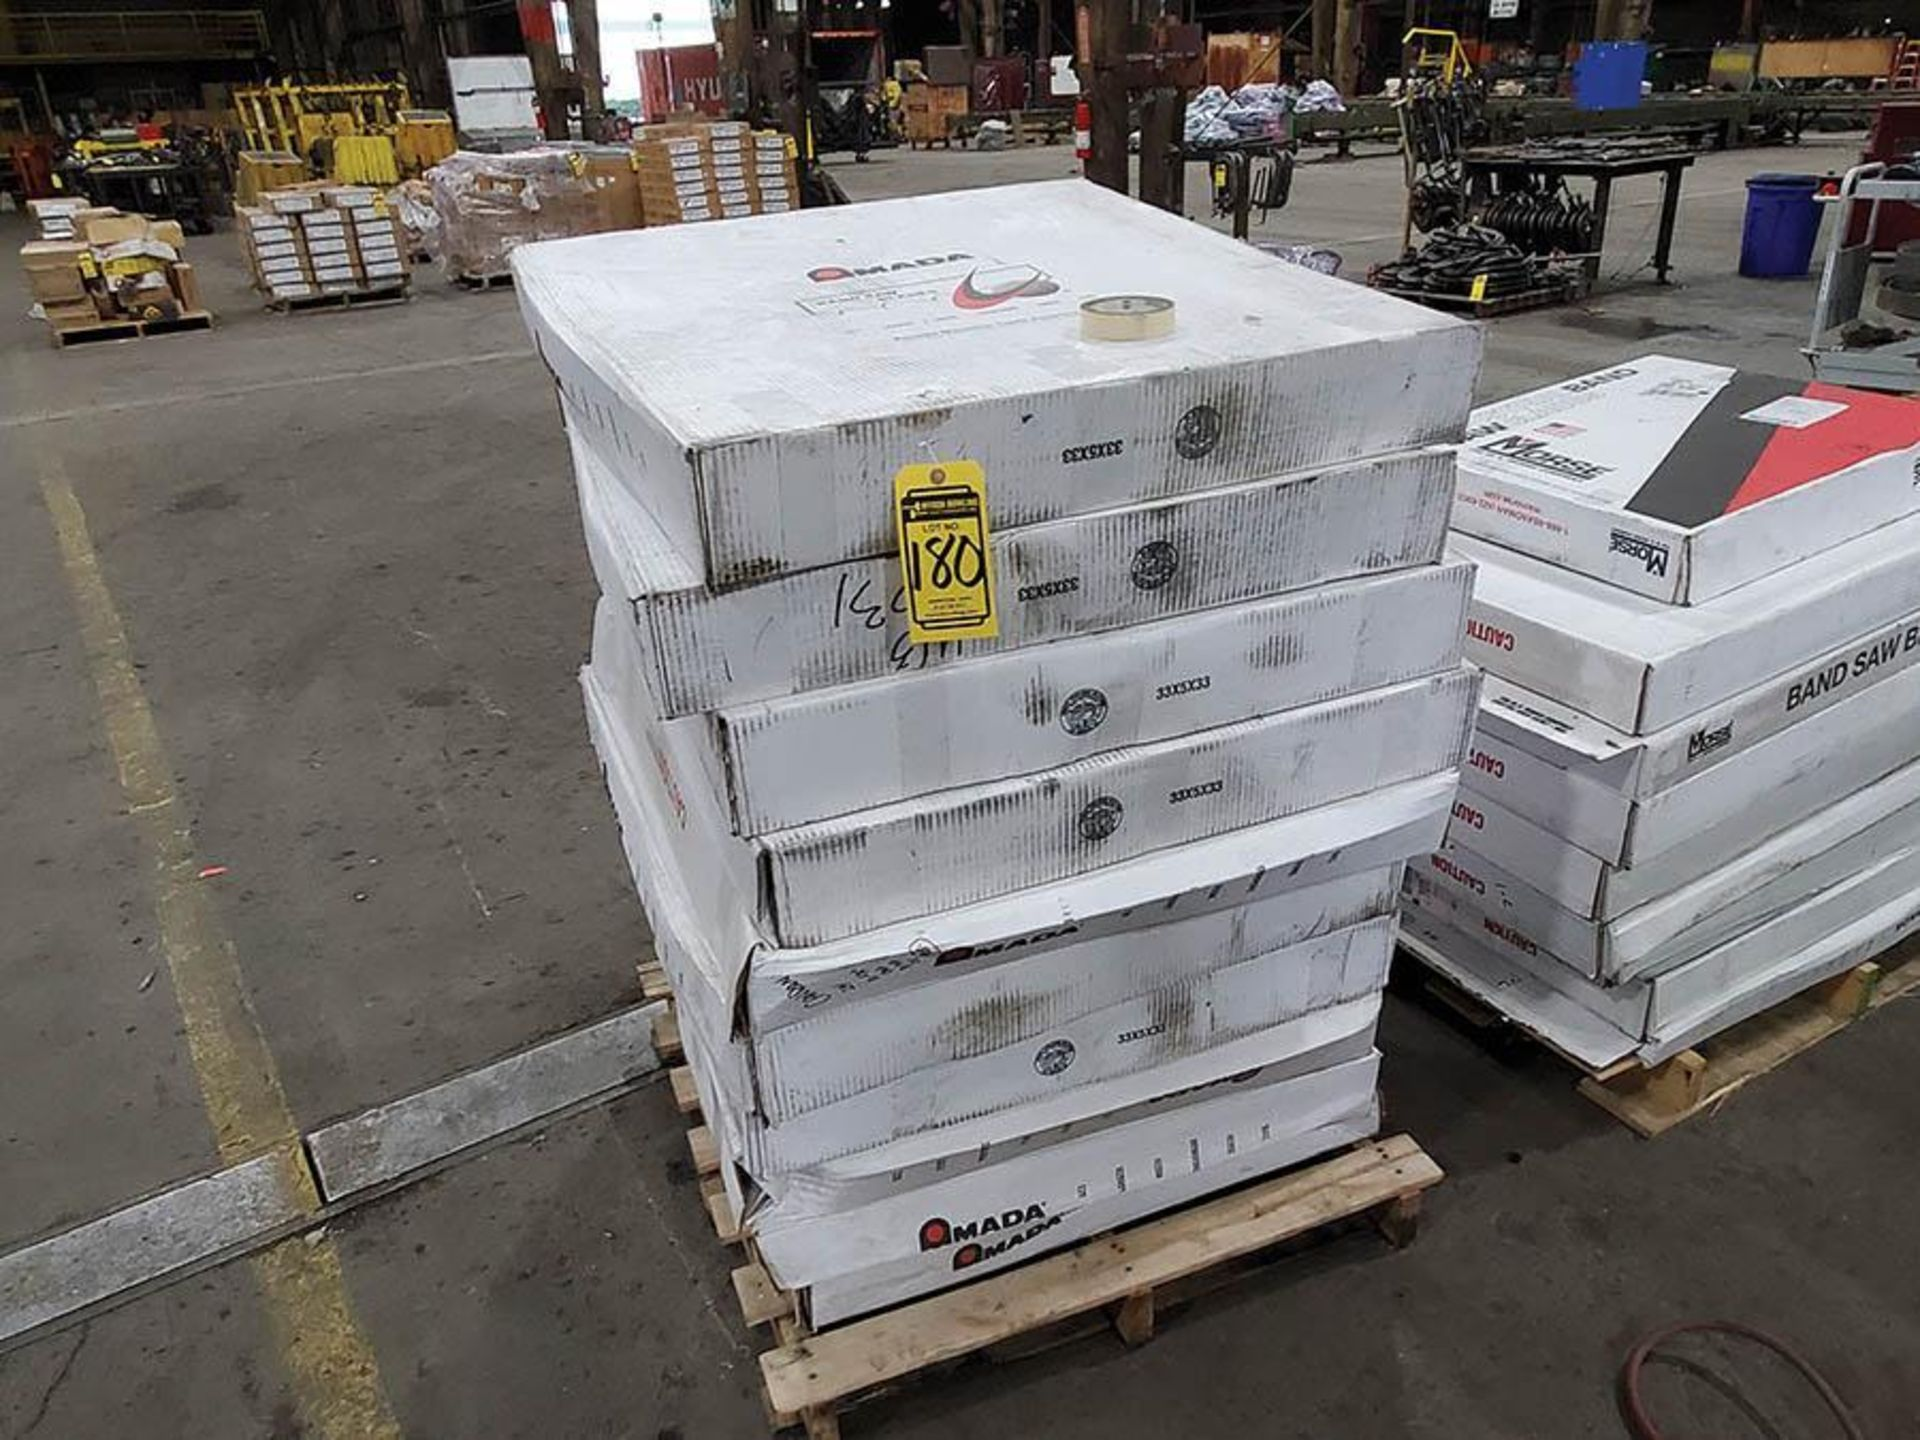 LOT ON PALLET, AMADA BANDSAW BLADES 29FT X 2 5 8IN